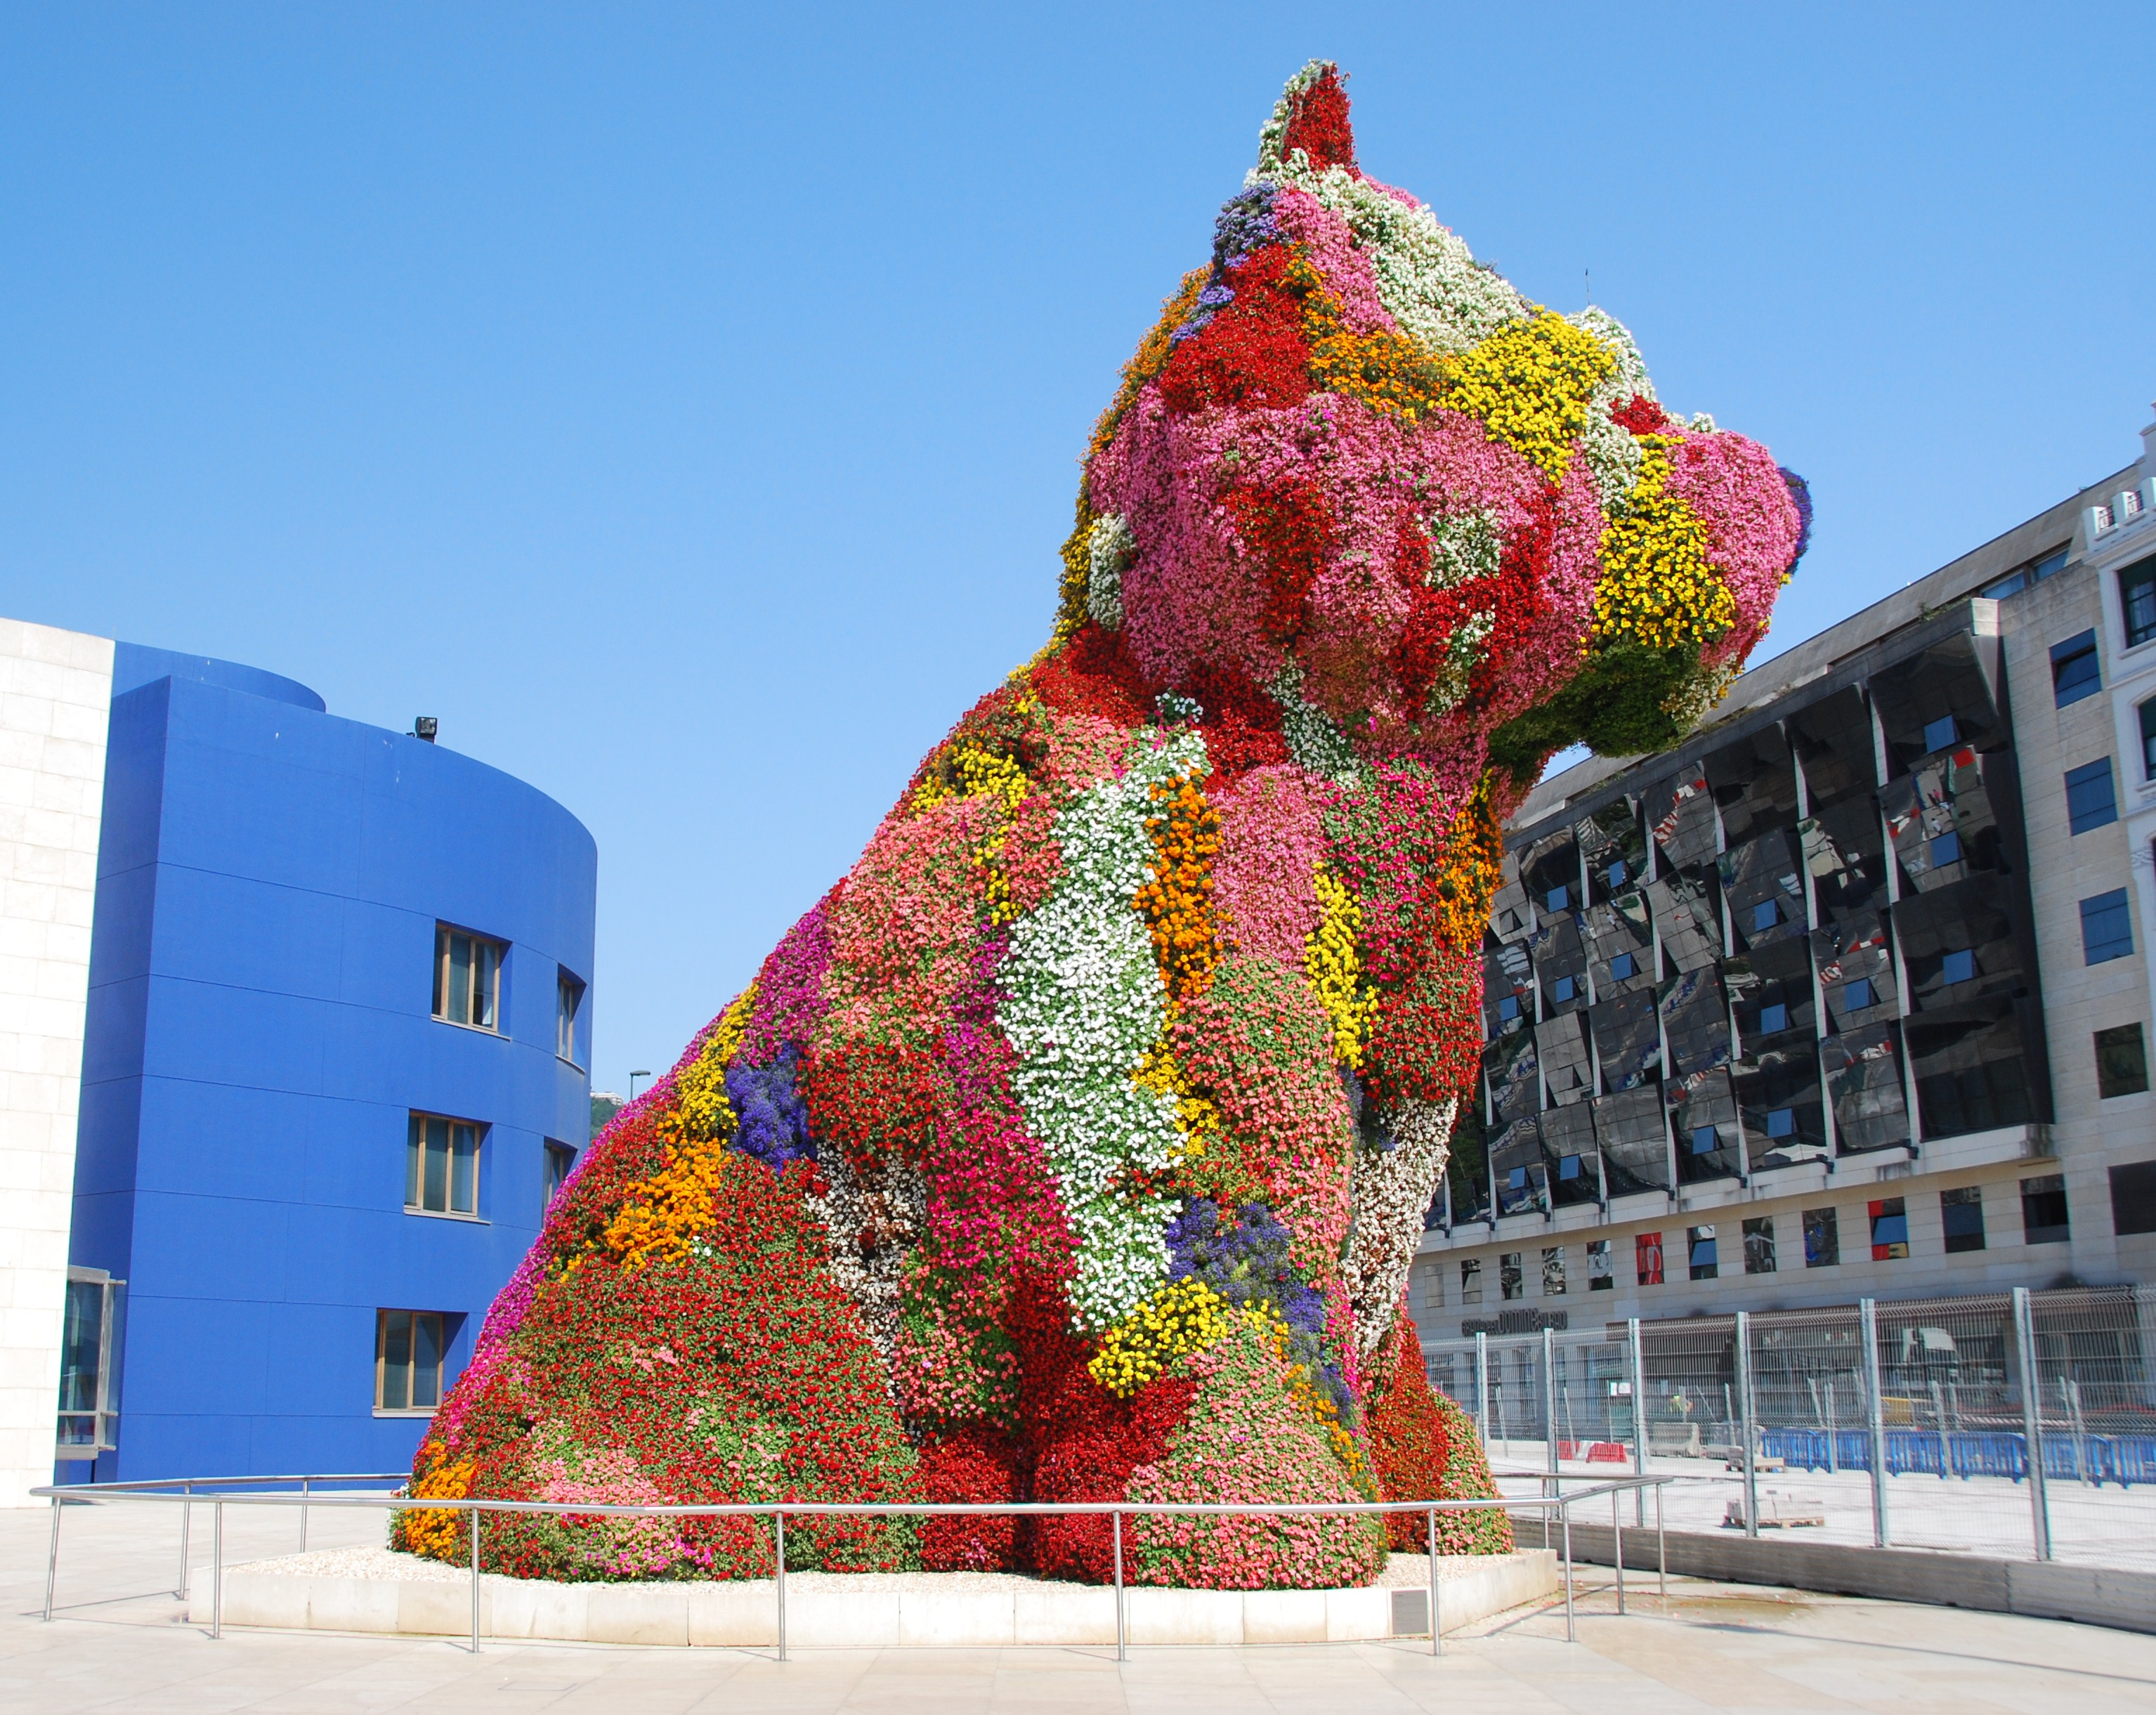 comparision jeff koons puppy Jeff koons was born in york, pennsylvania in 1955 he studied at the maryland institute college of art in baltimore and the school of the art institute of chicago he received a bfa from the maryland institute college of art in 1976.